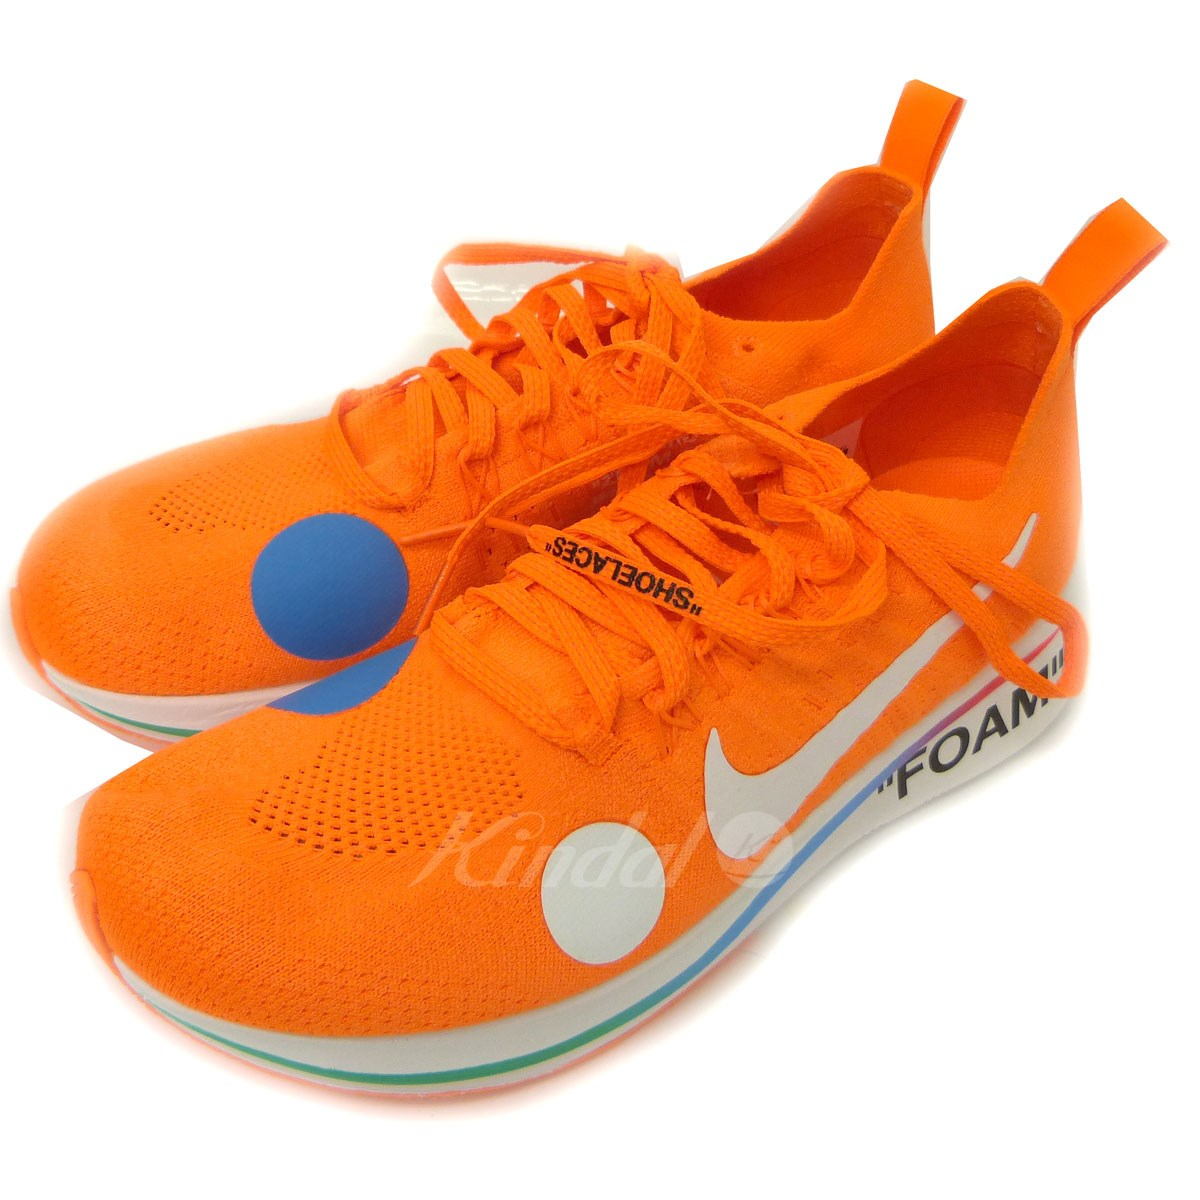 【中古】OFF WHITExNIKE 「ZOOM FLY MERCURIAL FK /OW」スニーカー 【送料無料】 【087849】 【KIND1551】